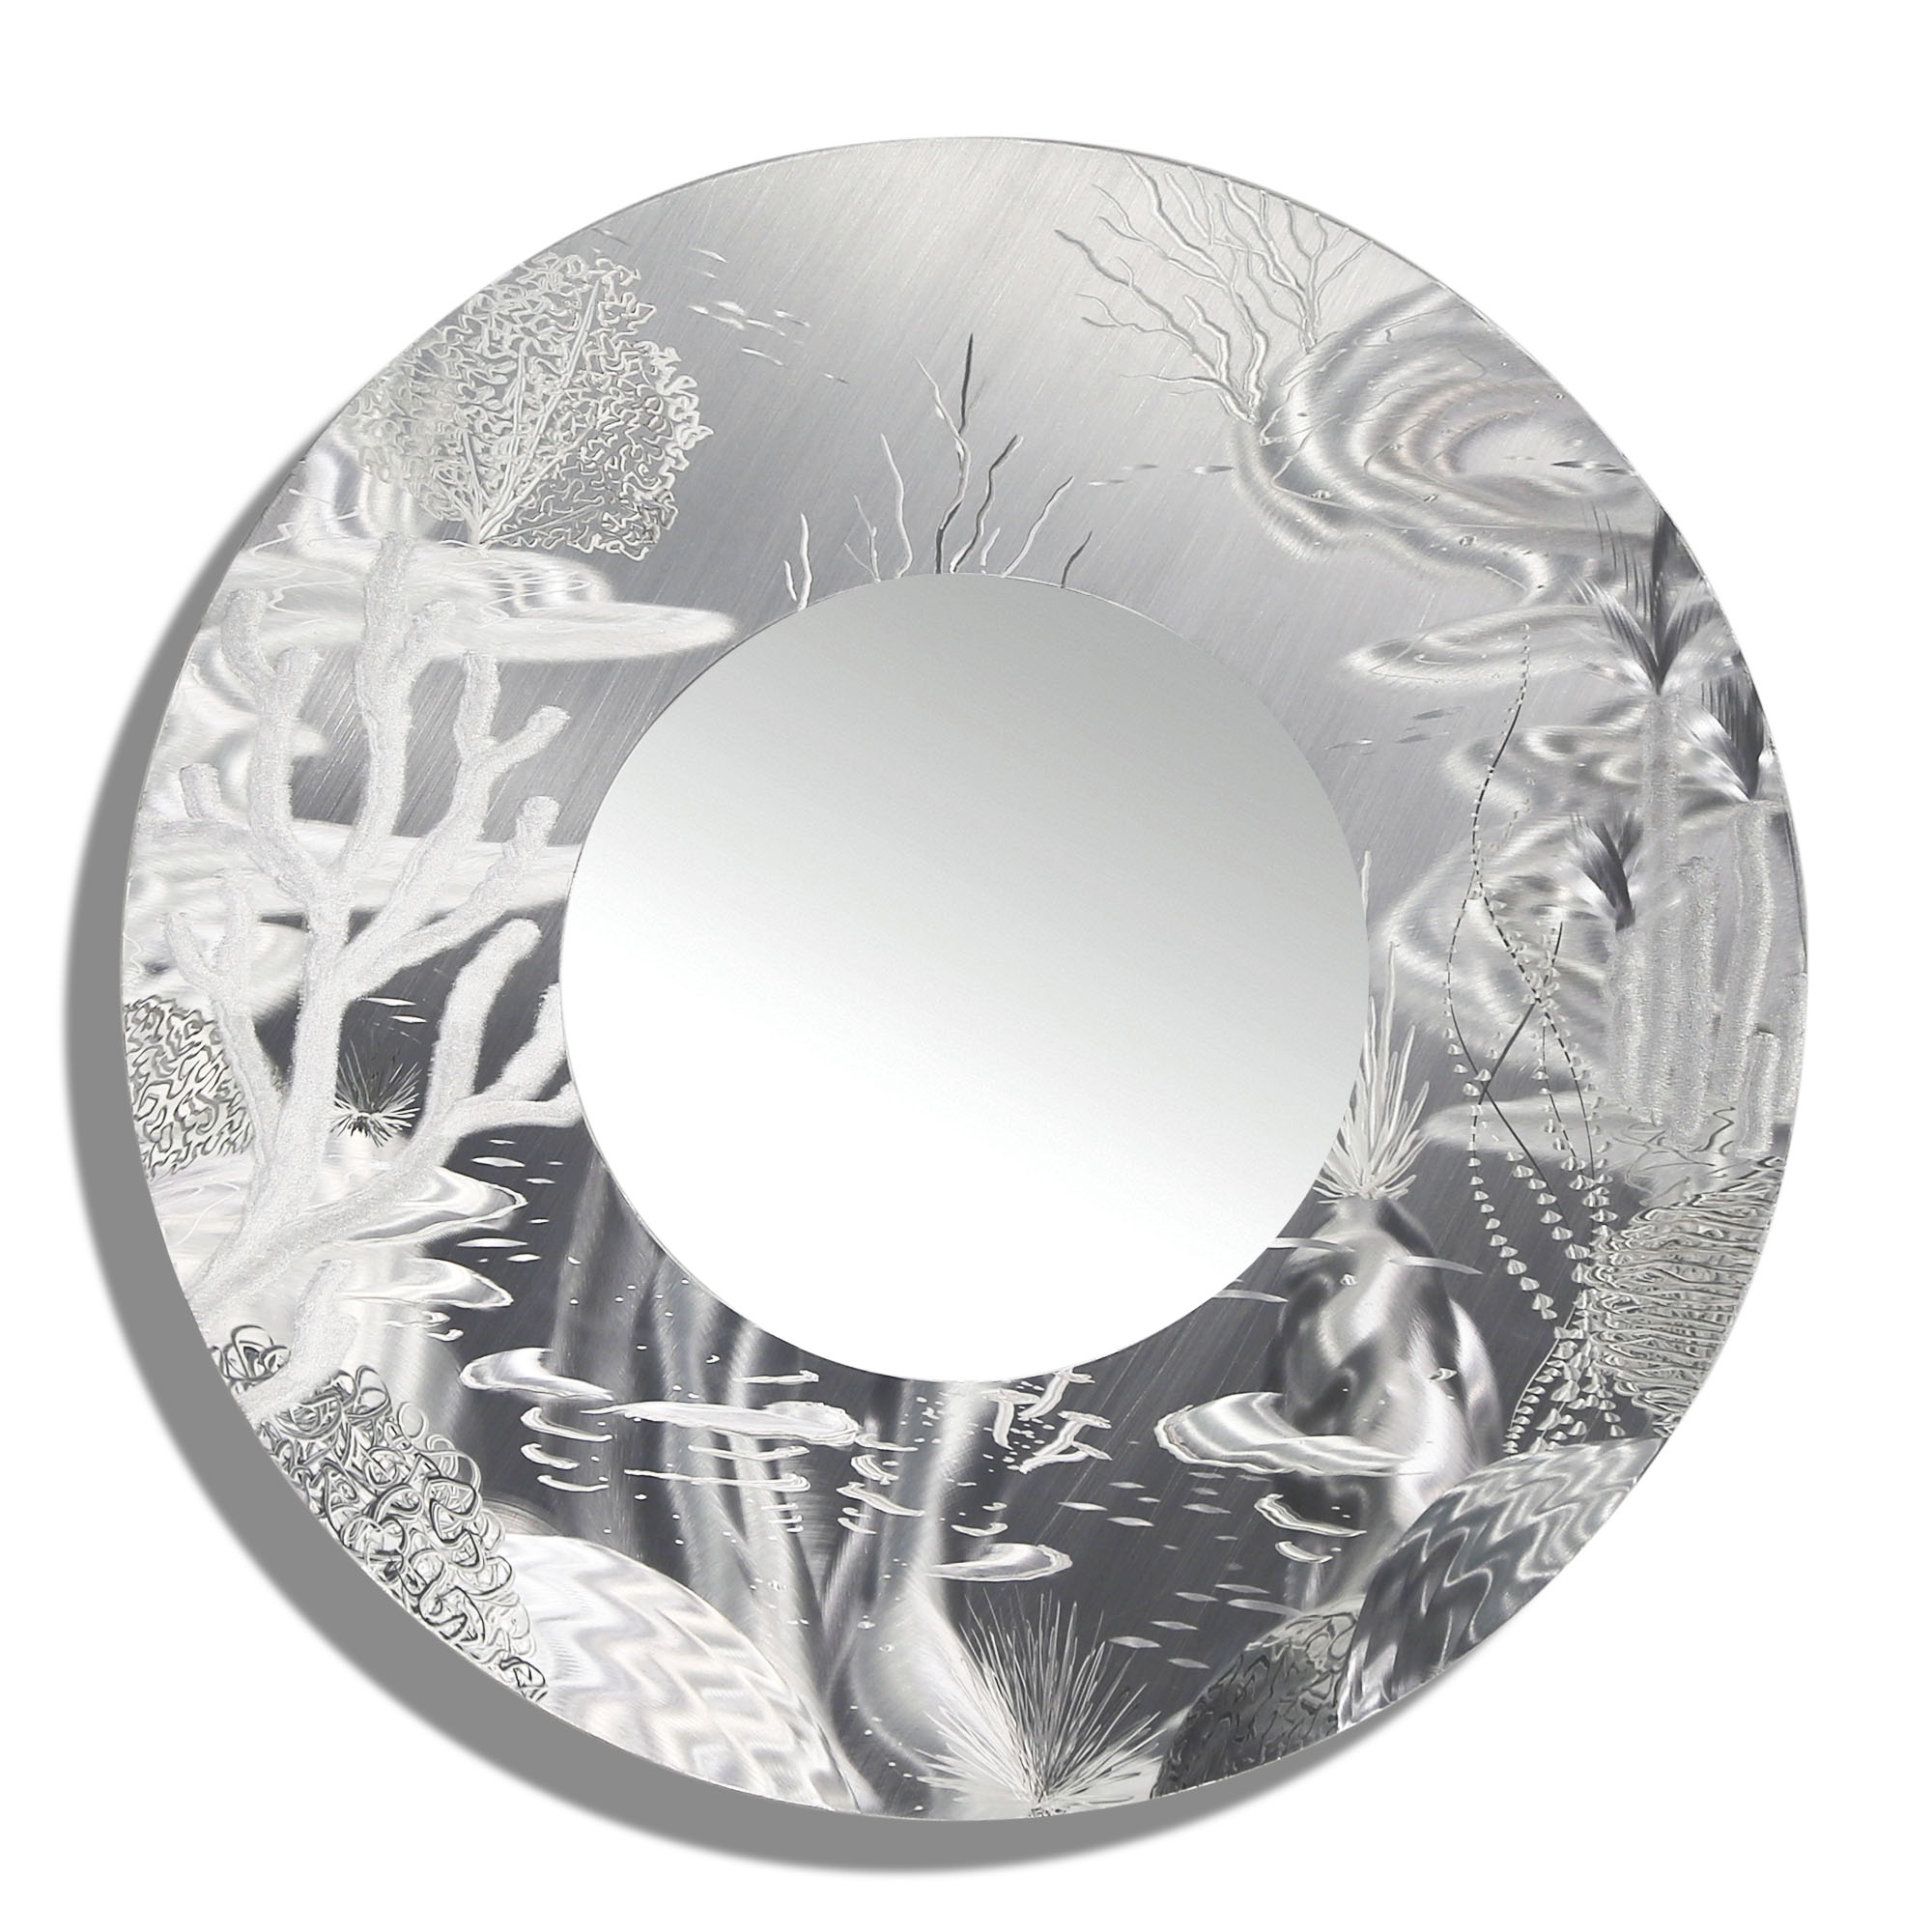 Mirror 102 – All Natural Silver Abstract Marine Life Circle Wall Mirror – Modern Metal Wall Accent Art Regarding Contemporary Abstract Round Wall Decor (View 17 of 30)